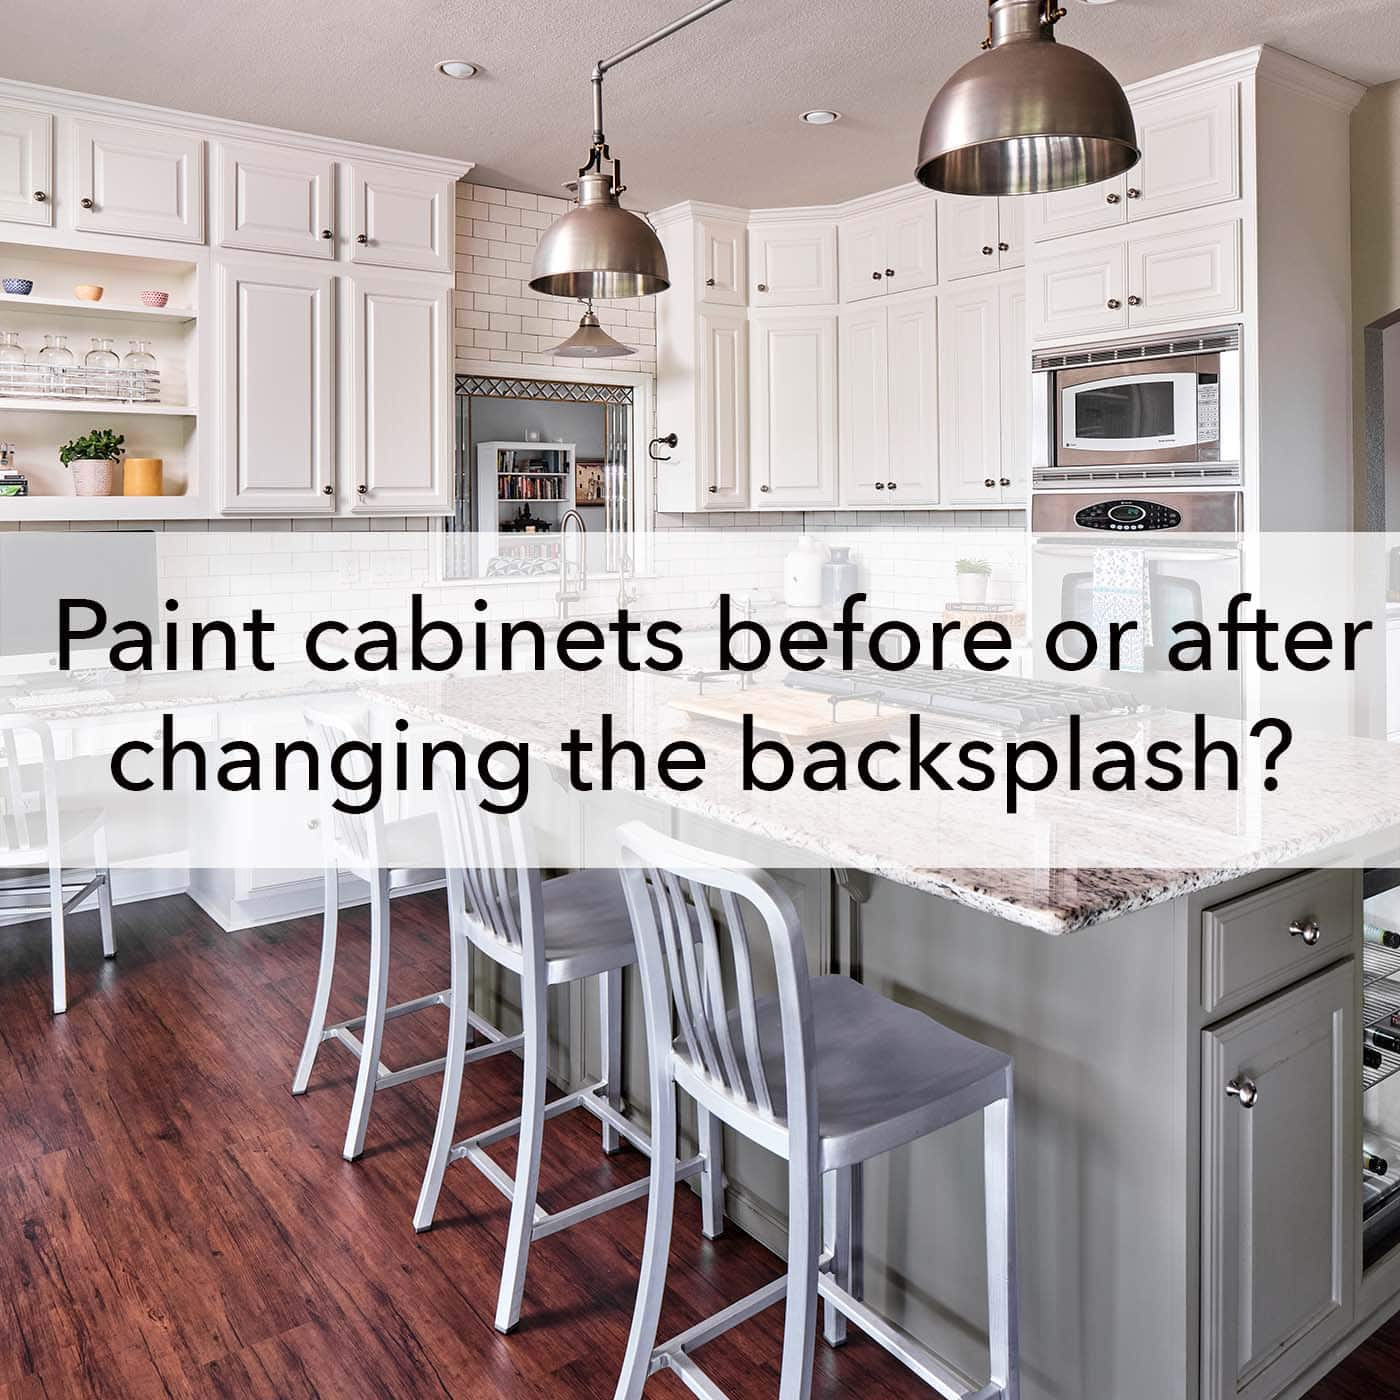 Image of: Painting Cabinets Before Or After Changing The Backsplash